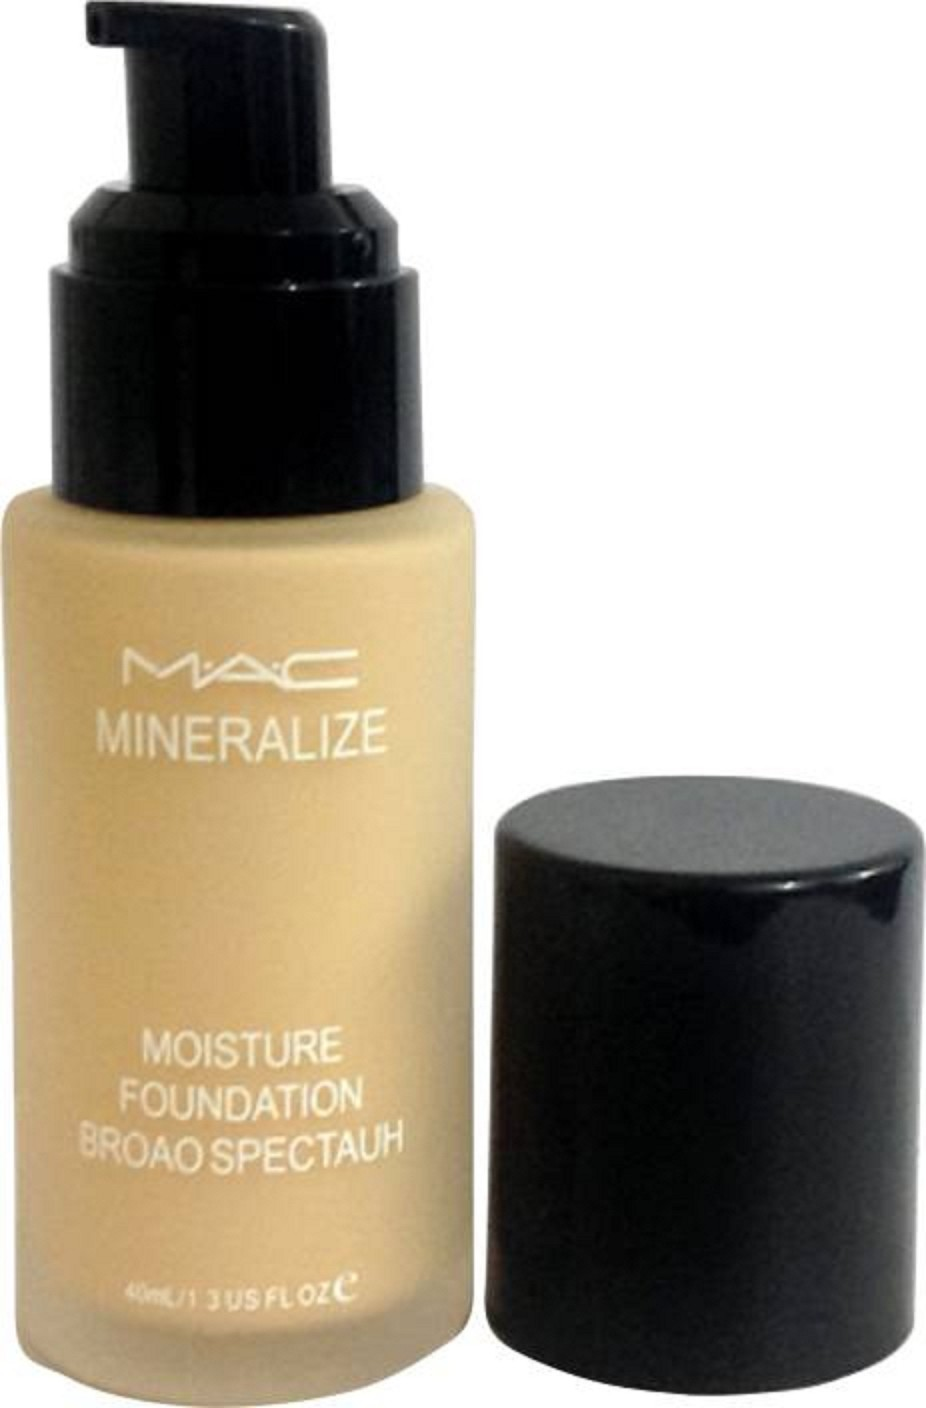 MAC Mineralize Satin Finish Foundation for dry skin